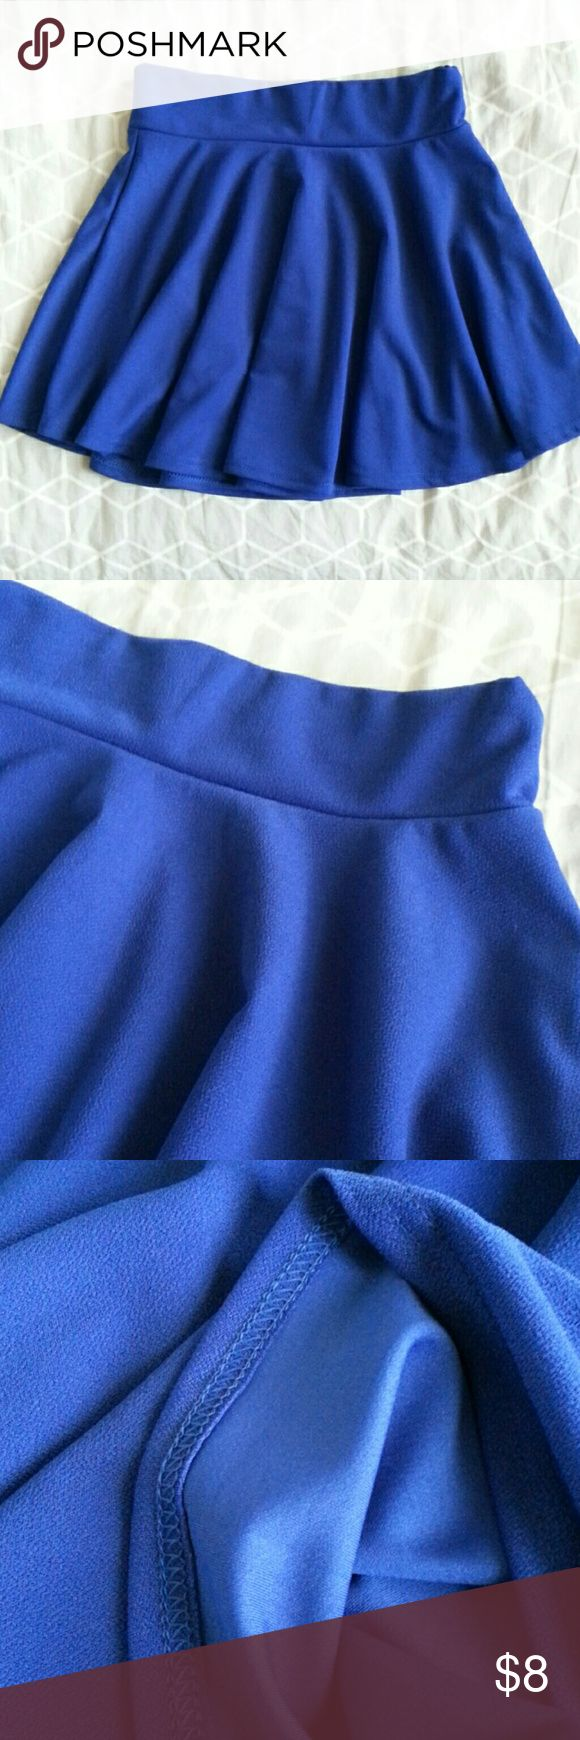 Bright Cobalt Blue Skater Skirt Elastic Waist XS S Beautiful blue color, never worn new without tags  Waist measures 24 inches unstretched and 28 inches stretched  Length is 14 inches  Let me know if you have any questions or need any measurements!   Not F21 from a similar shop Forever 21 Skirts Circle & Skater